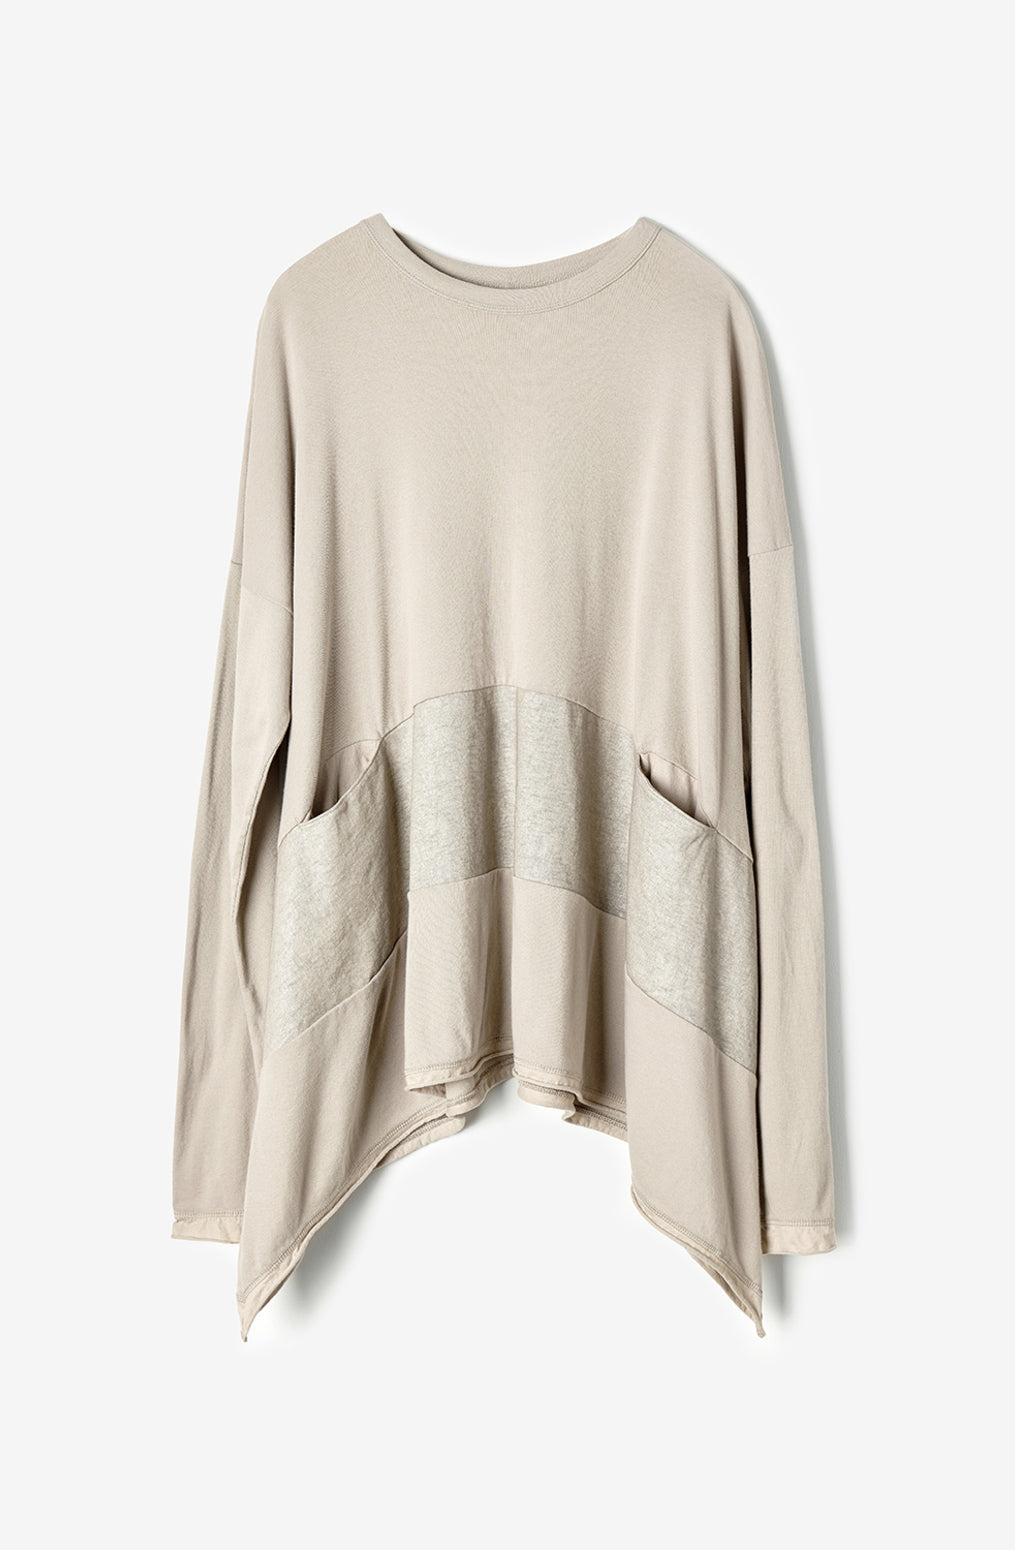 image of Natalie's Pullover